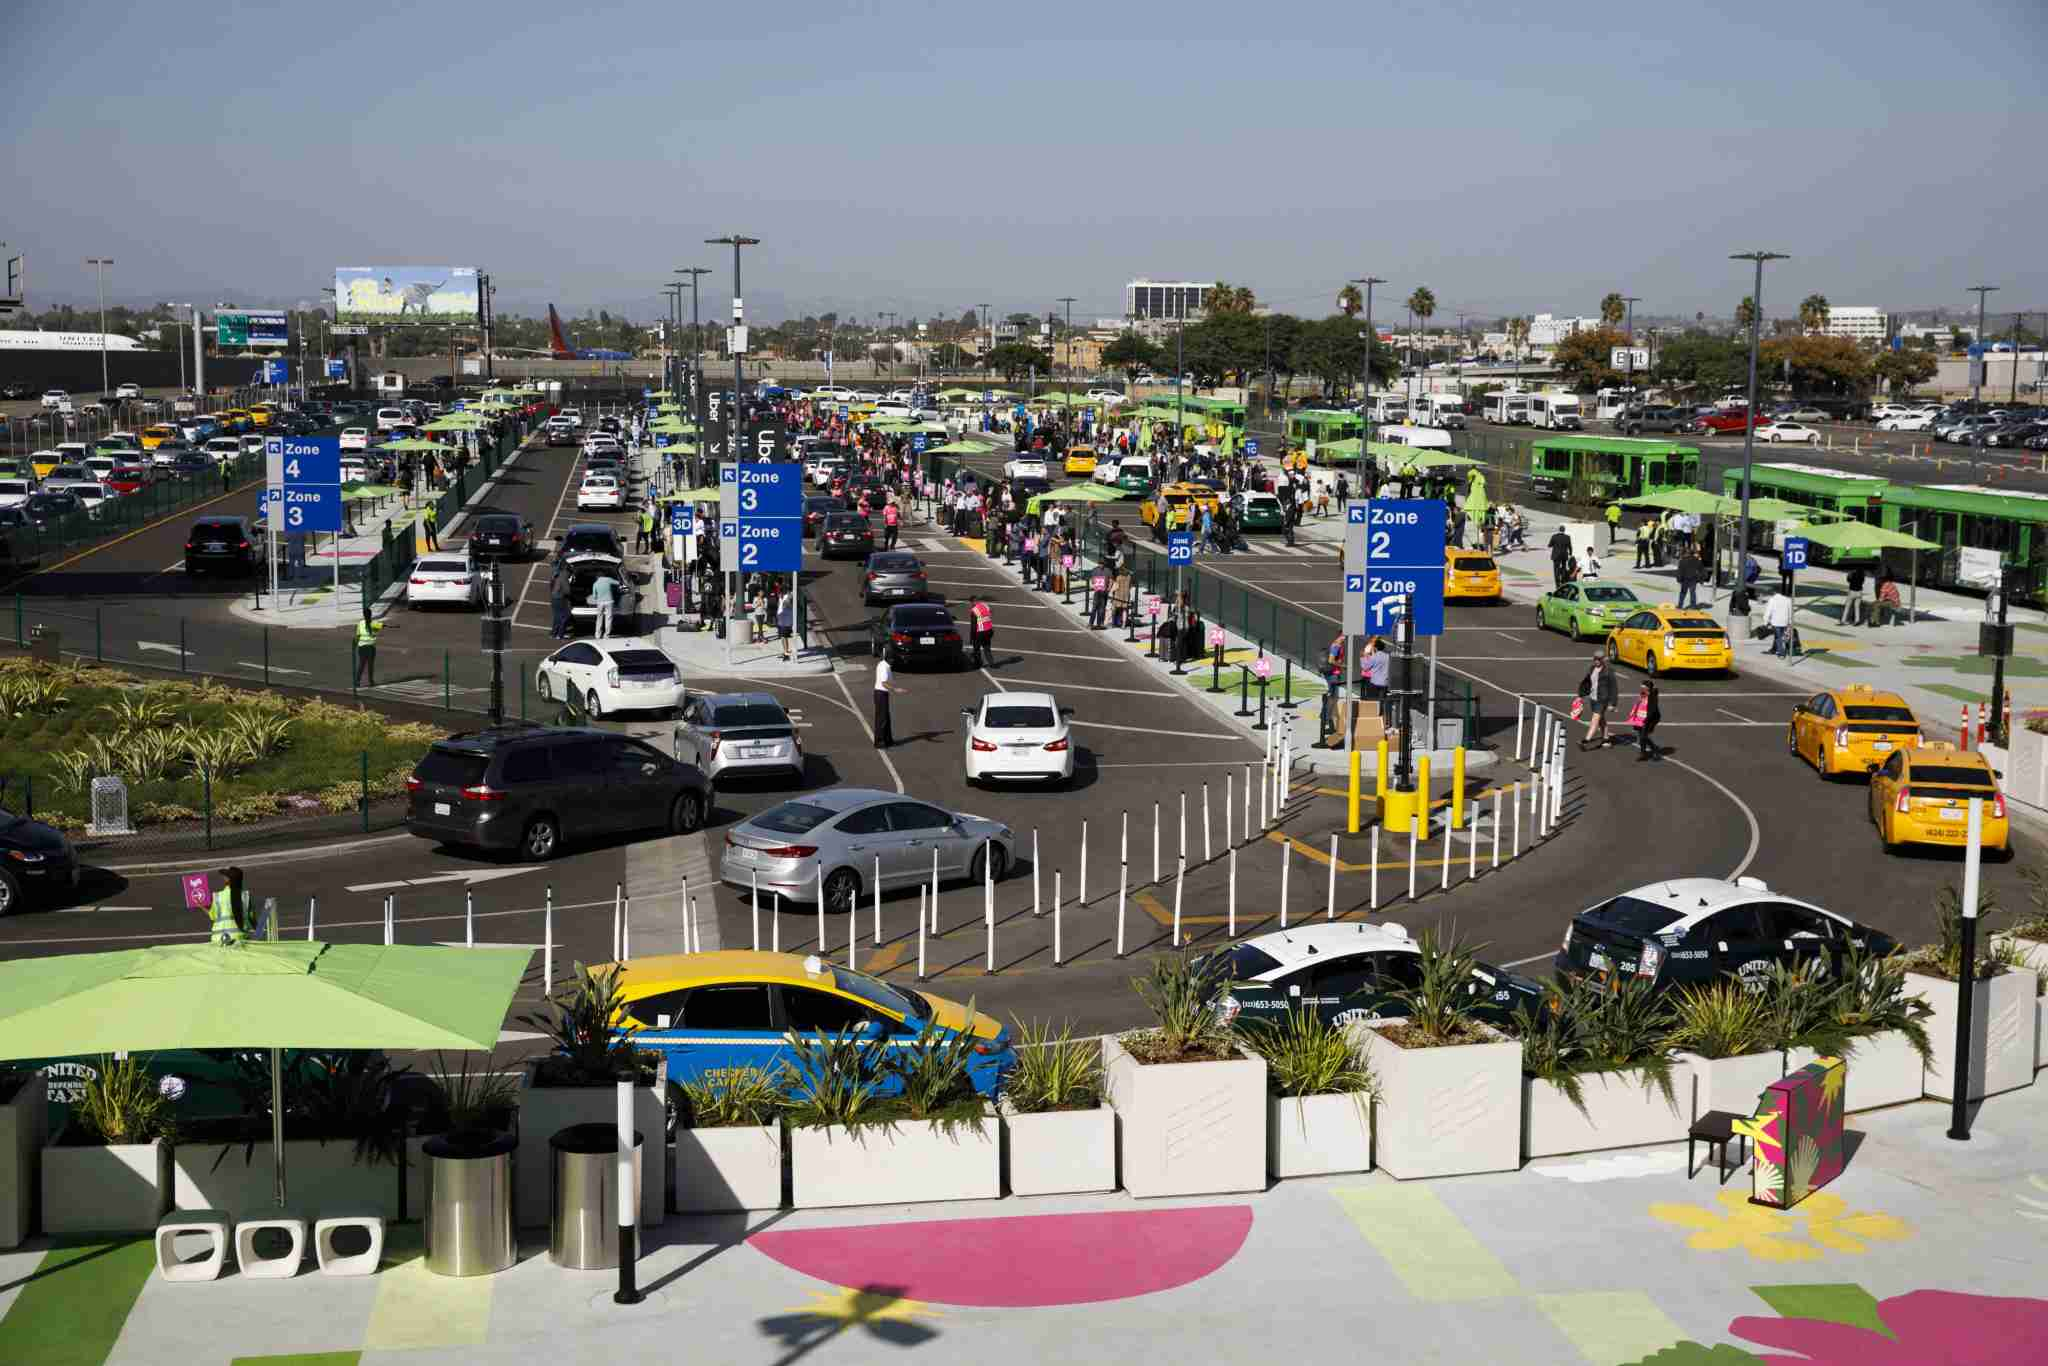 Vehicles from Uber Technologies Inc., Lyft Inc., and taxi cabs enter the LAX-it centralized pickup area at Los Angeles International Airport (LAX) in Los Angeles, California, U.S., on Tuesday, Oct. 29, 2019. On Tuesday, Los Angeles International Airport